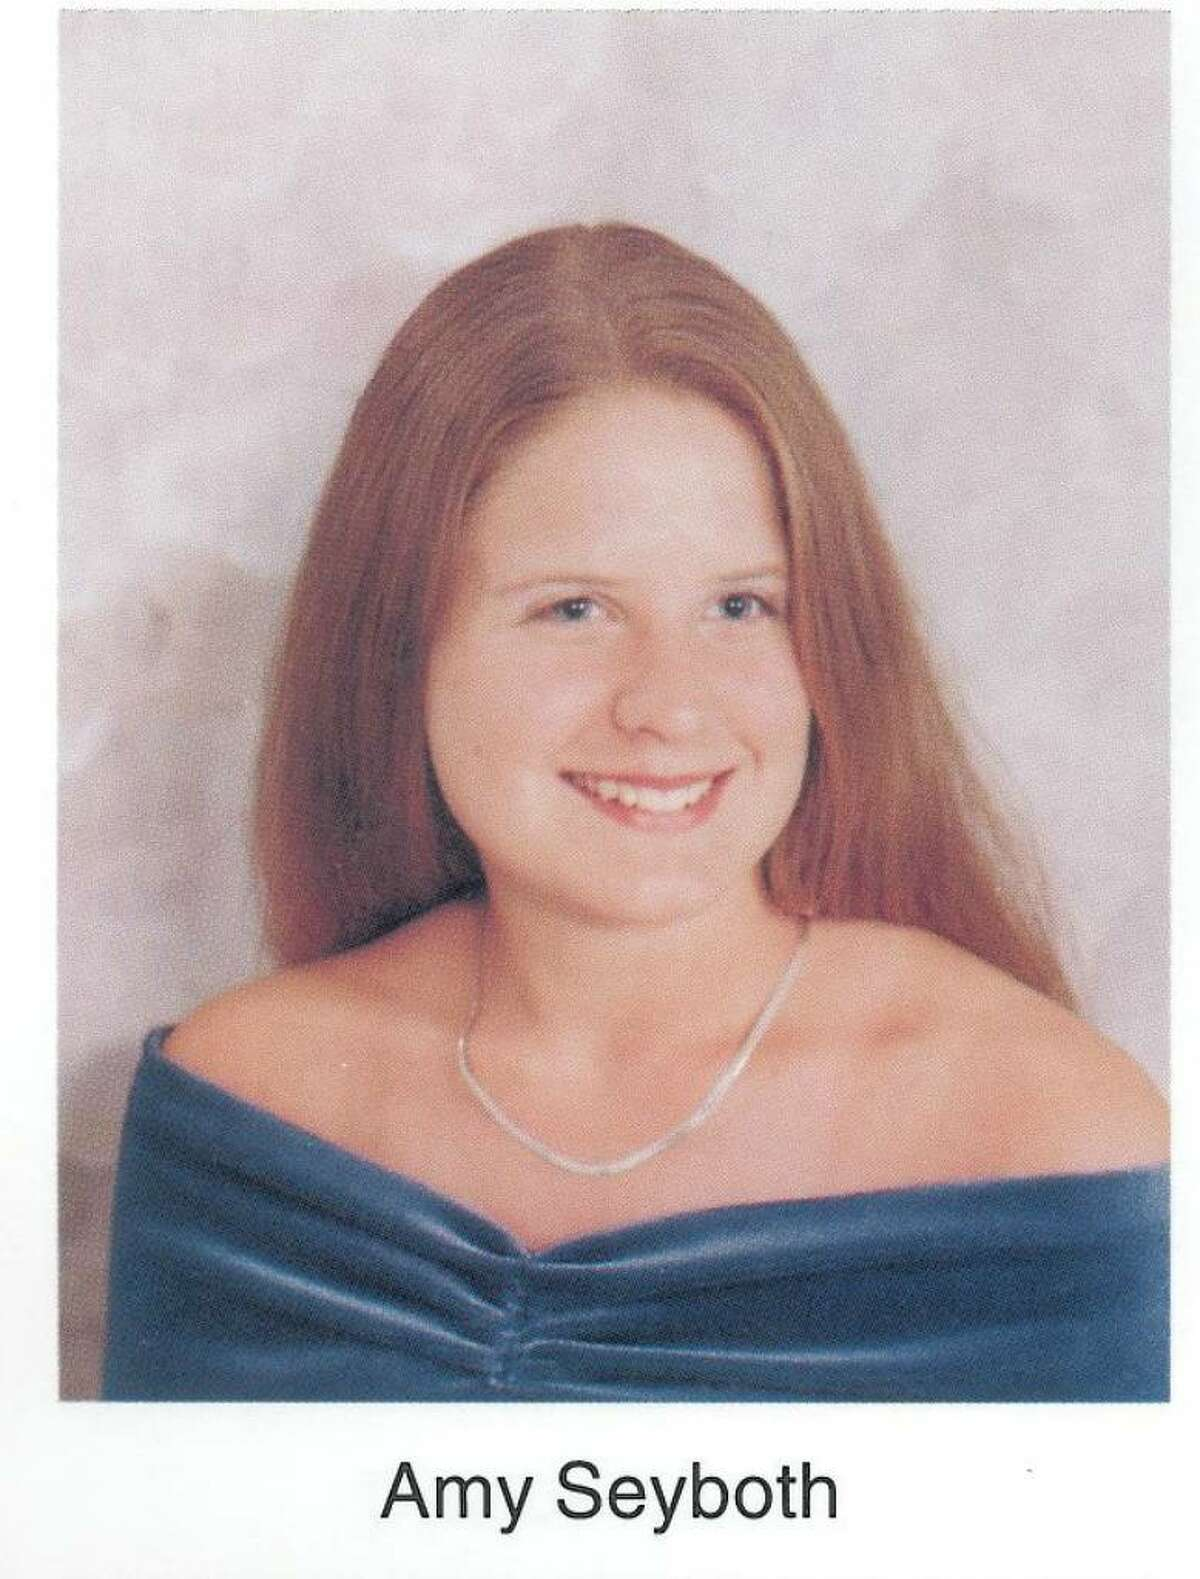 Amy Seyboth Tirador is shown in her 1998 Colonie Central High School senior picture.